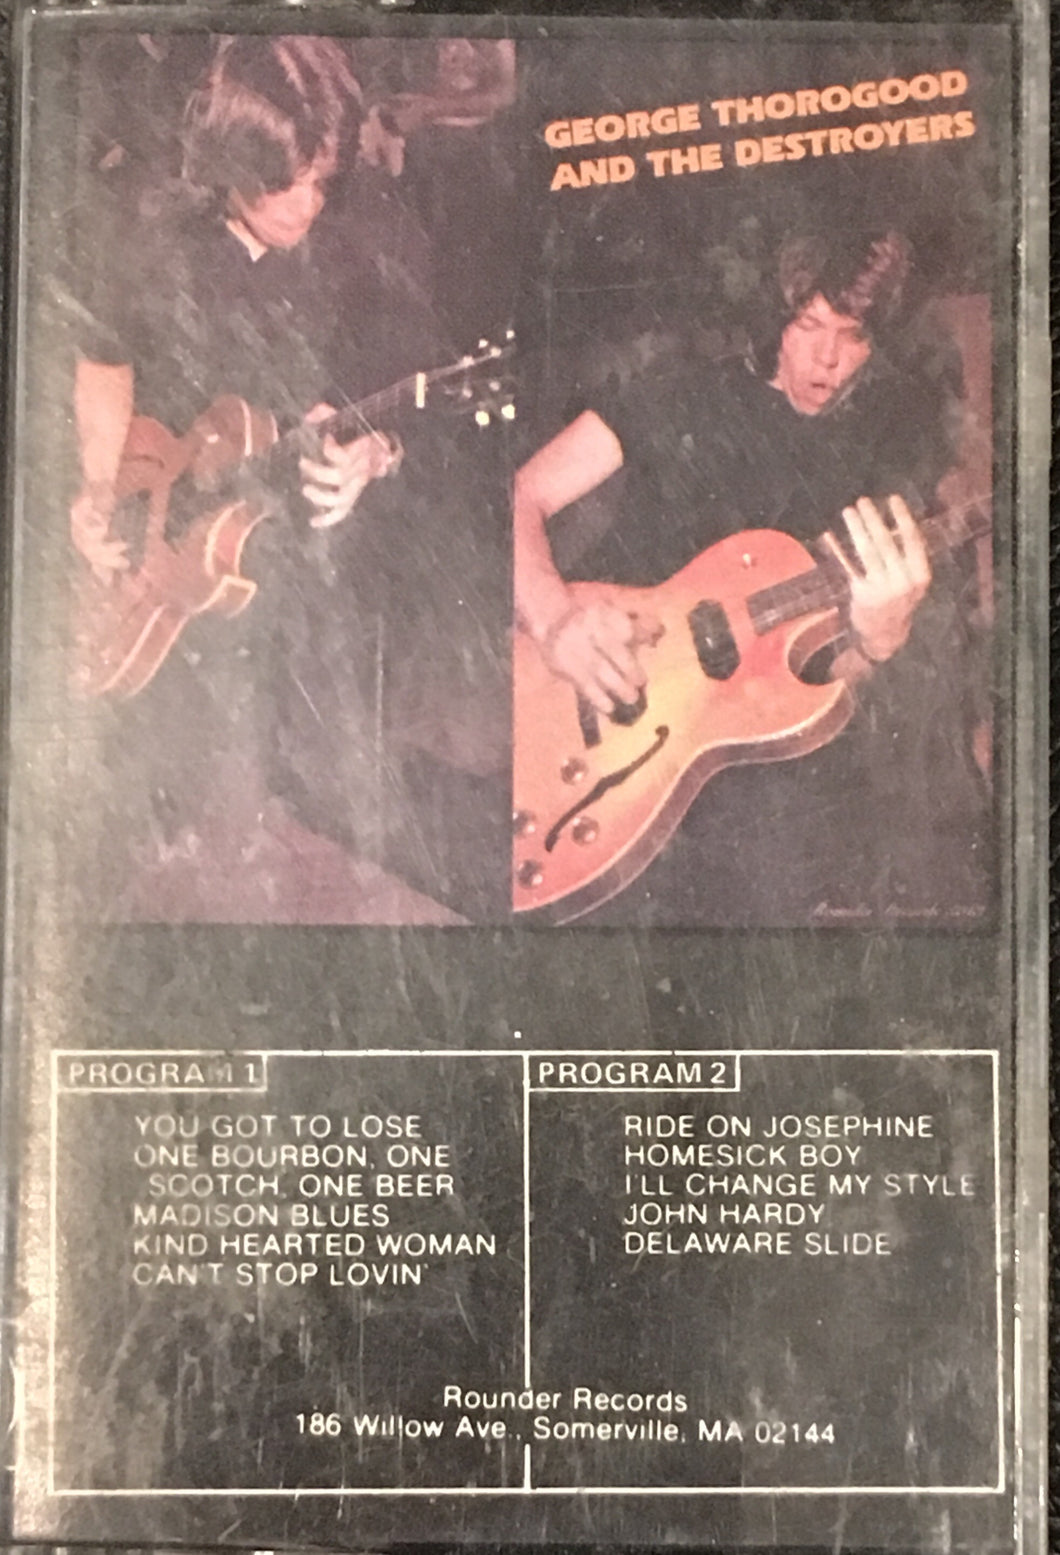 George Thorogood and the Destroyers s/t cassette